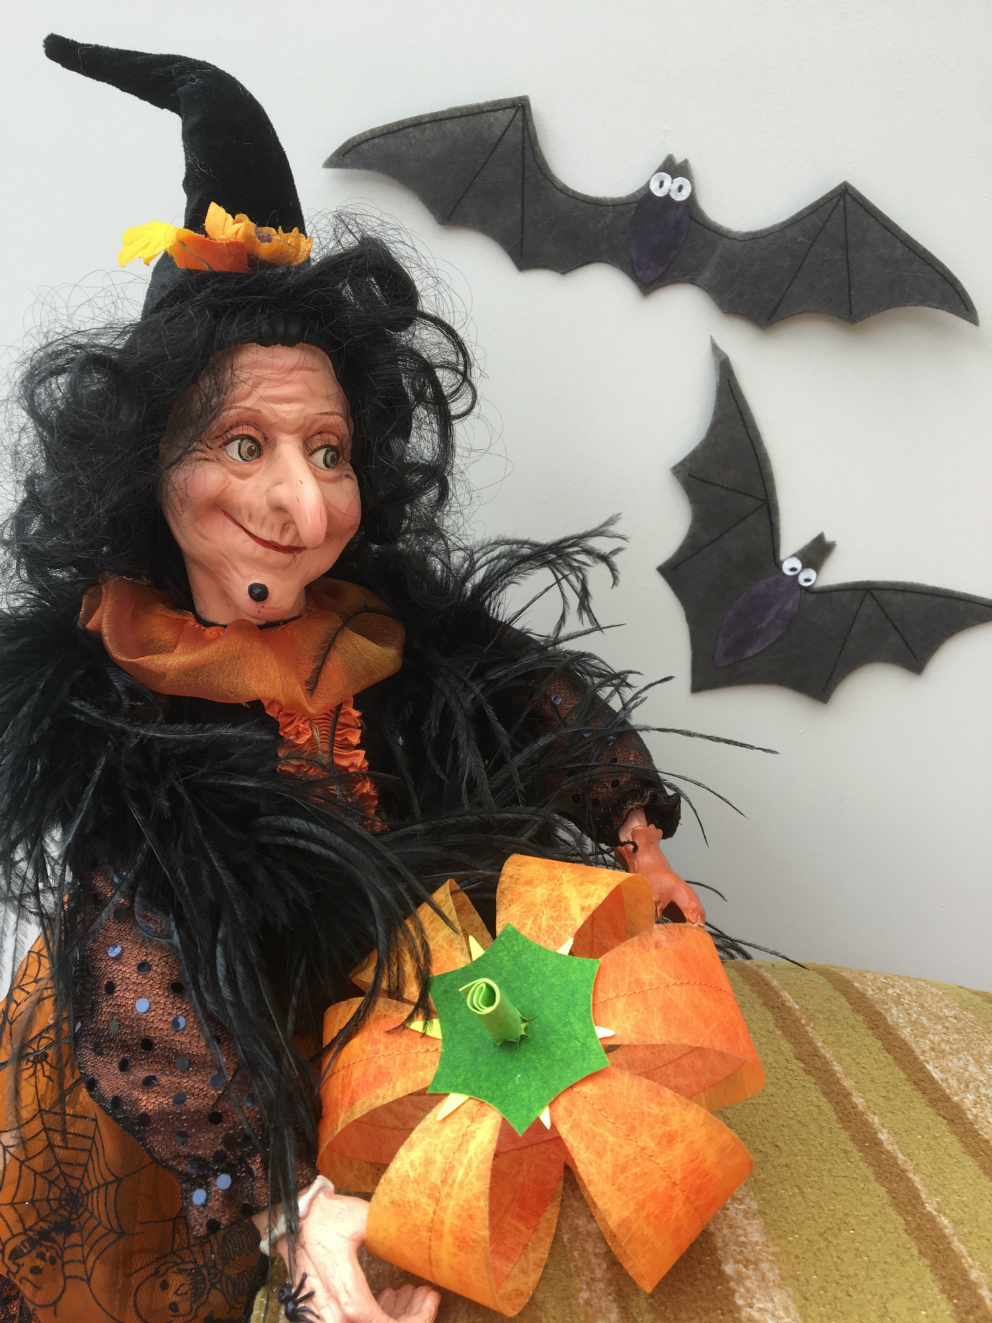 Smiling witch, dressed in orange and black with crooked witch's hat, holds a orange pumpkin made out of Lutradur, with two bats behind her, made out of Lutradur Black.